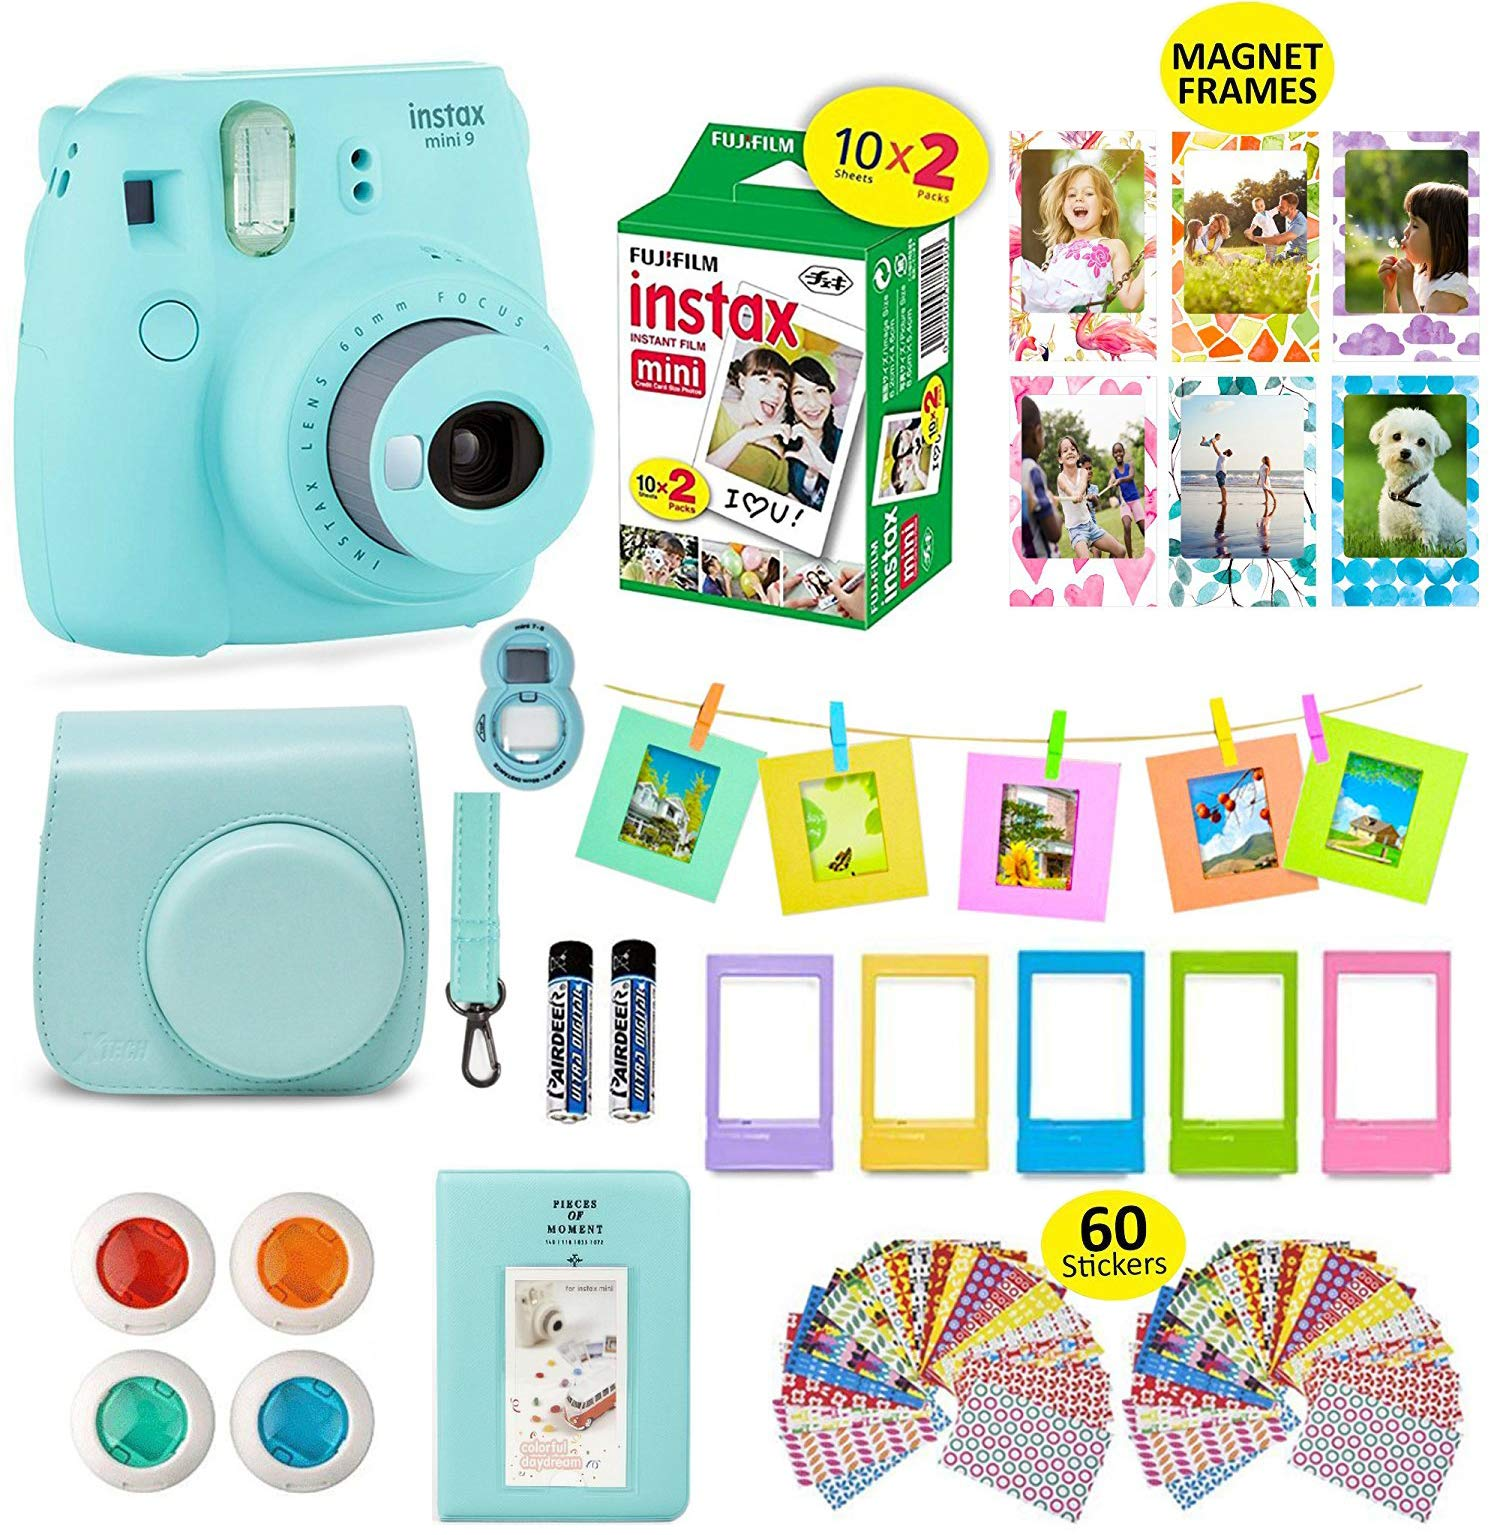 Fujifilm Instax Mini 9 ICE Blue Camera + 20 Instant Film Twin Pack, Instax Case + 14 PC Instax Accessories Bundle Kit. Includes; Albums, 4 Color Lenses, Selfie Lens, Frames + 60 Stickers by Shutter by Shutter